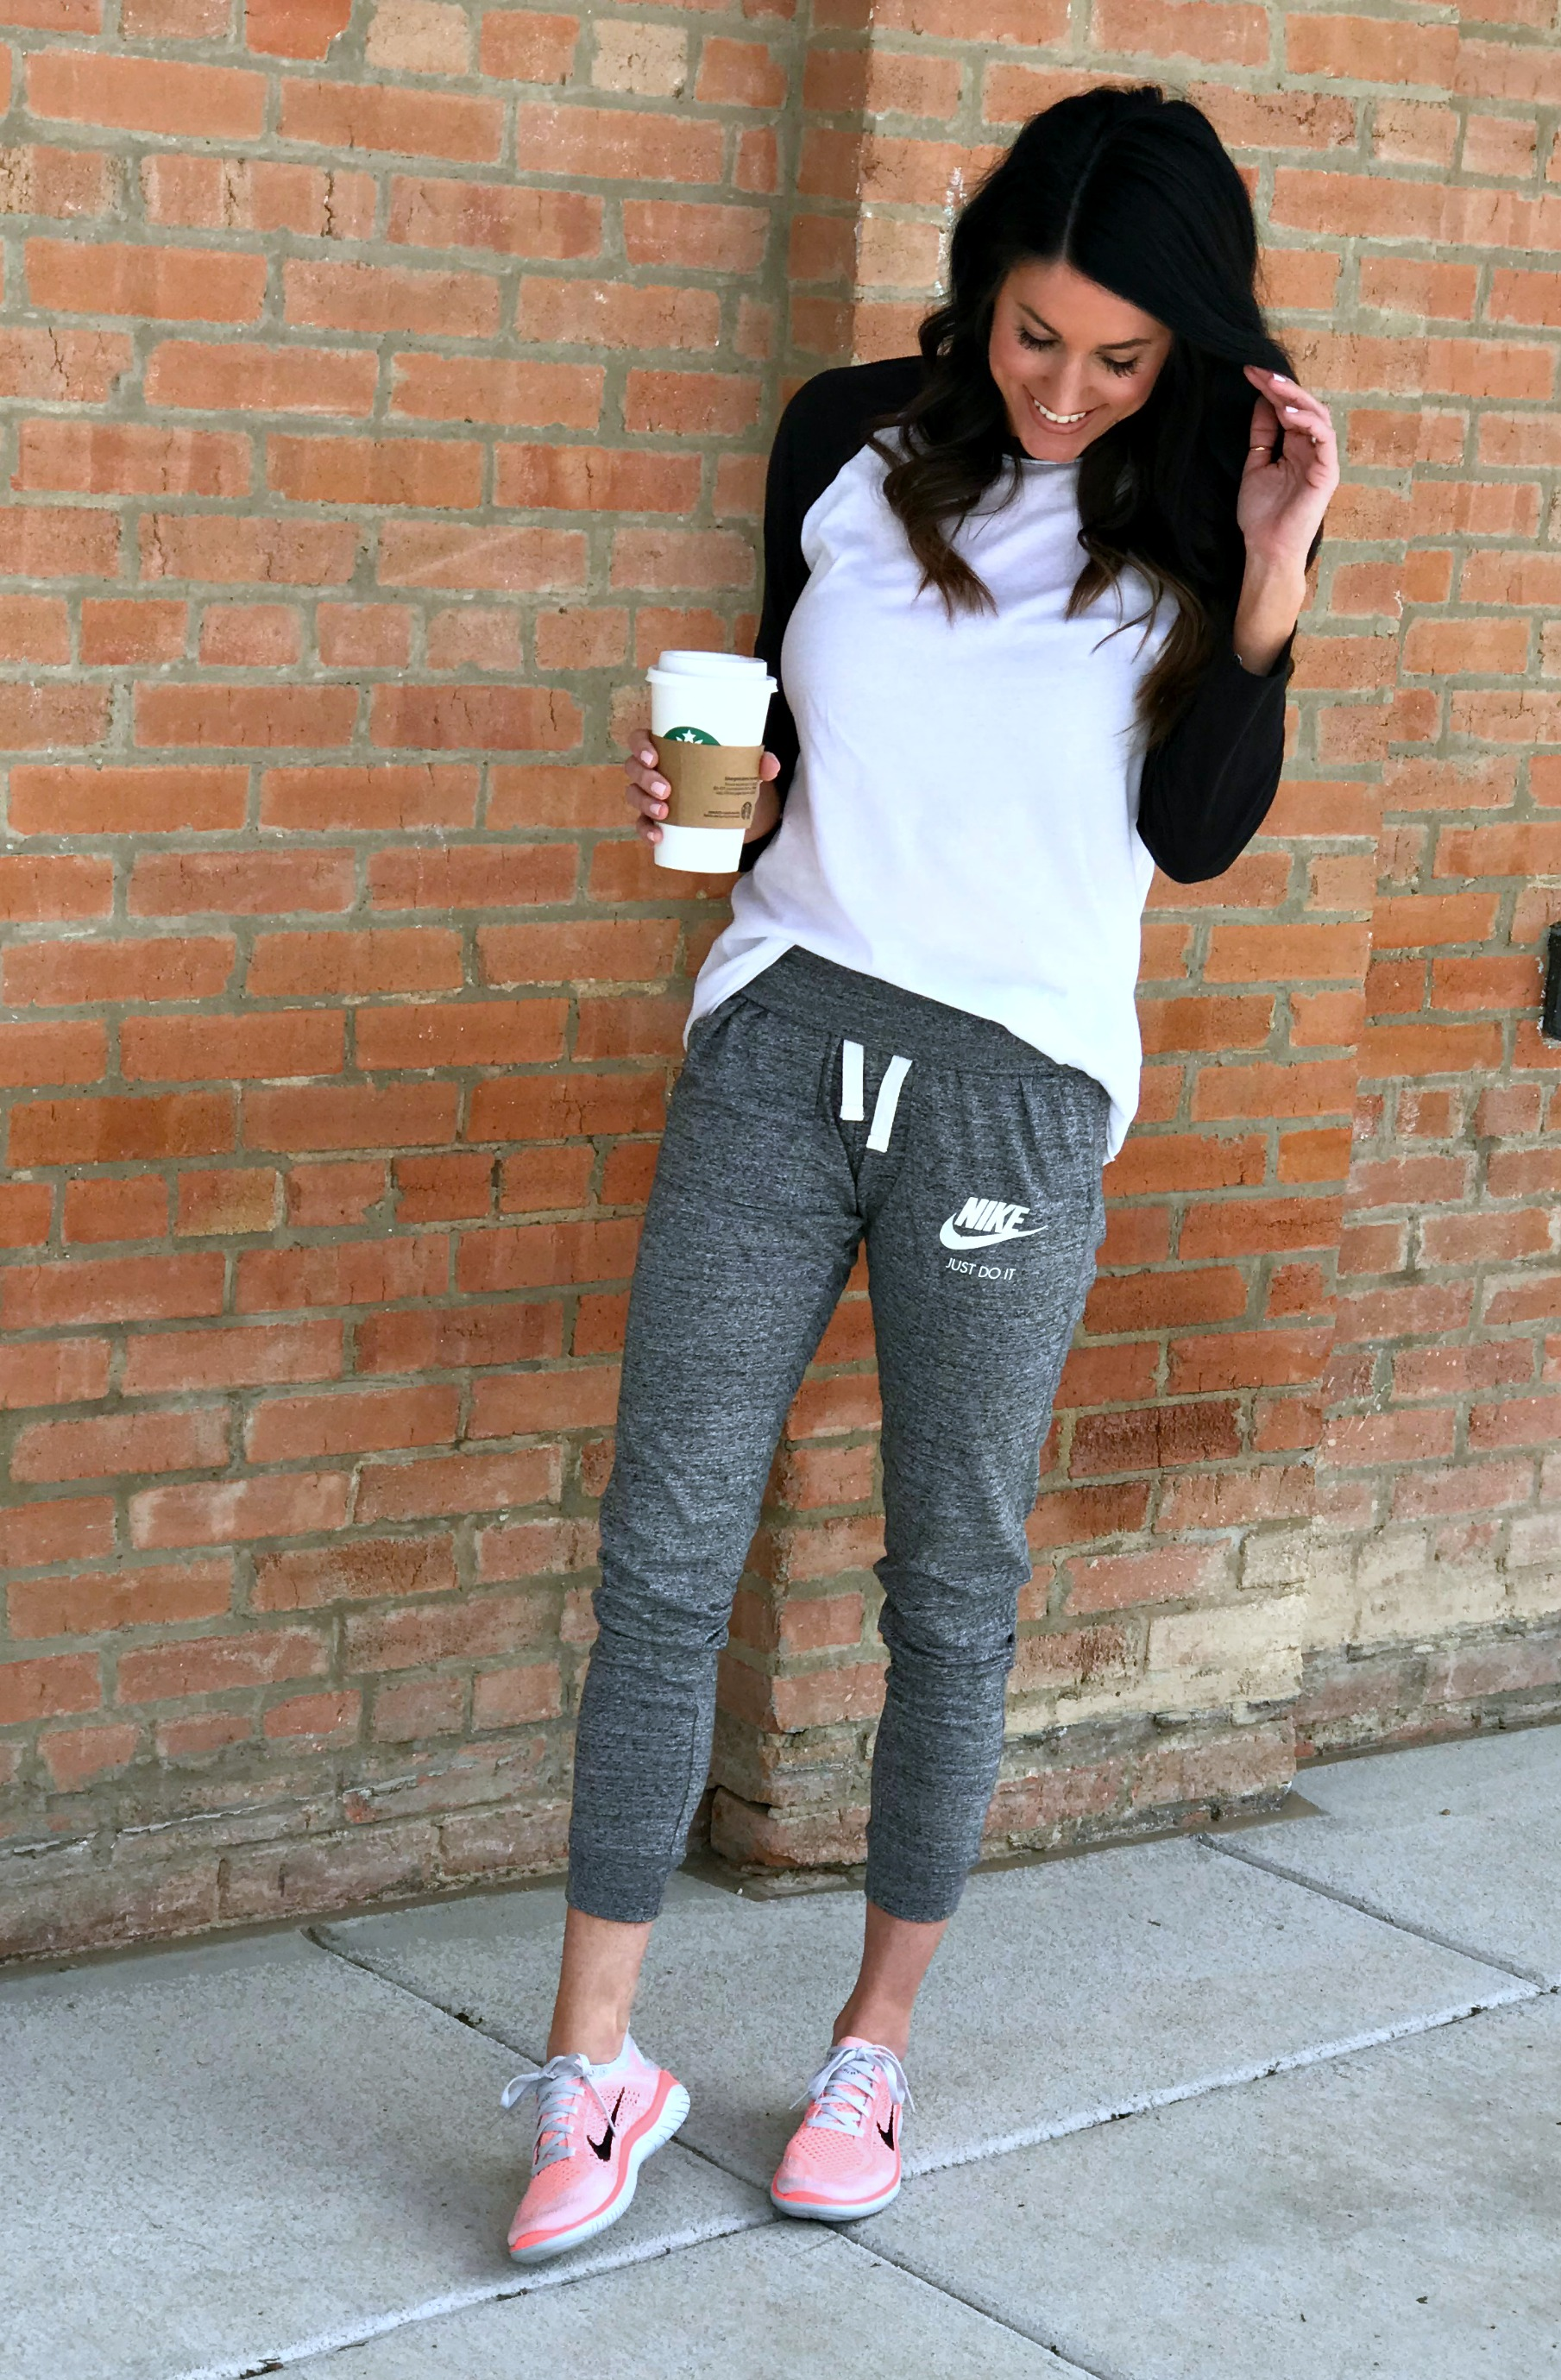 Nike, Sneakers, Joggers, Tee, Casual Style